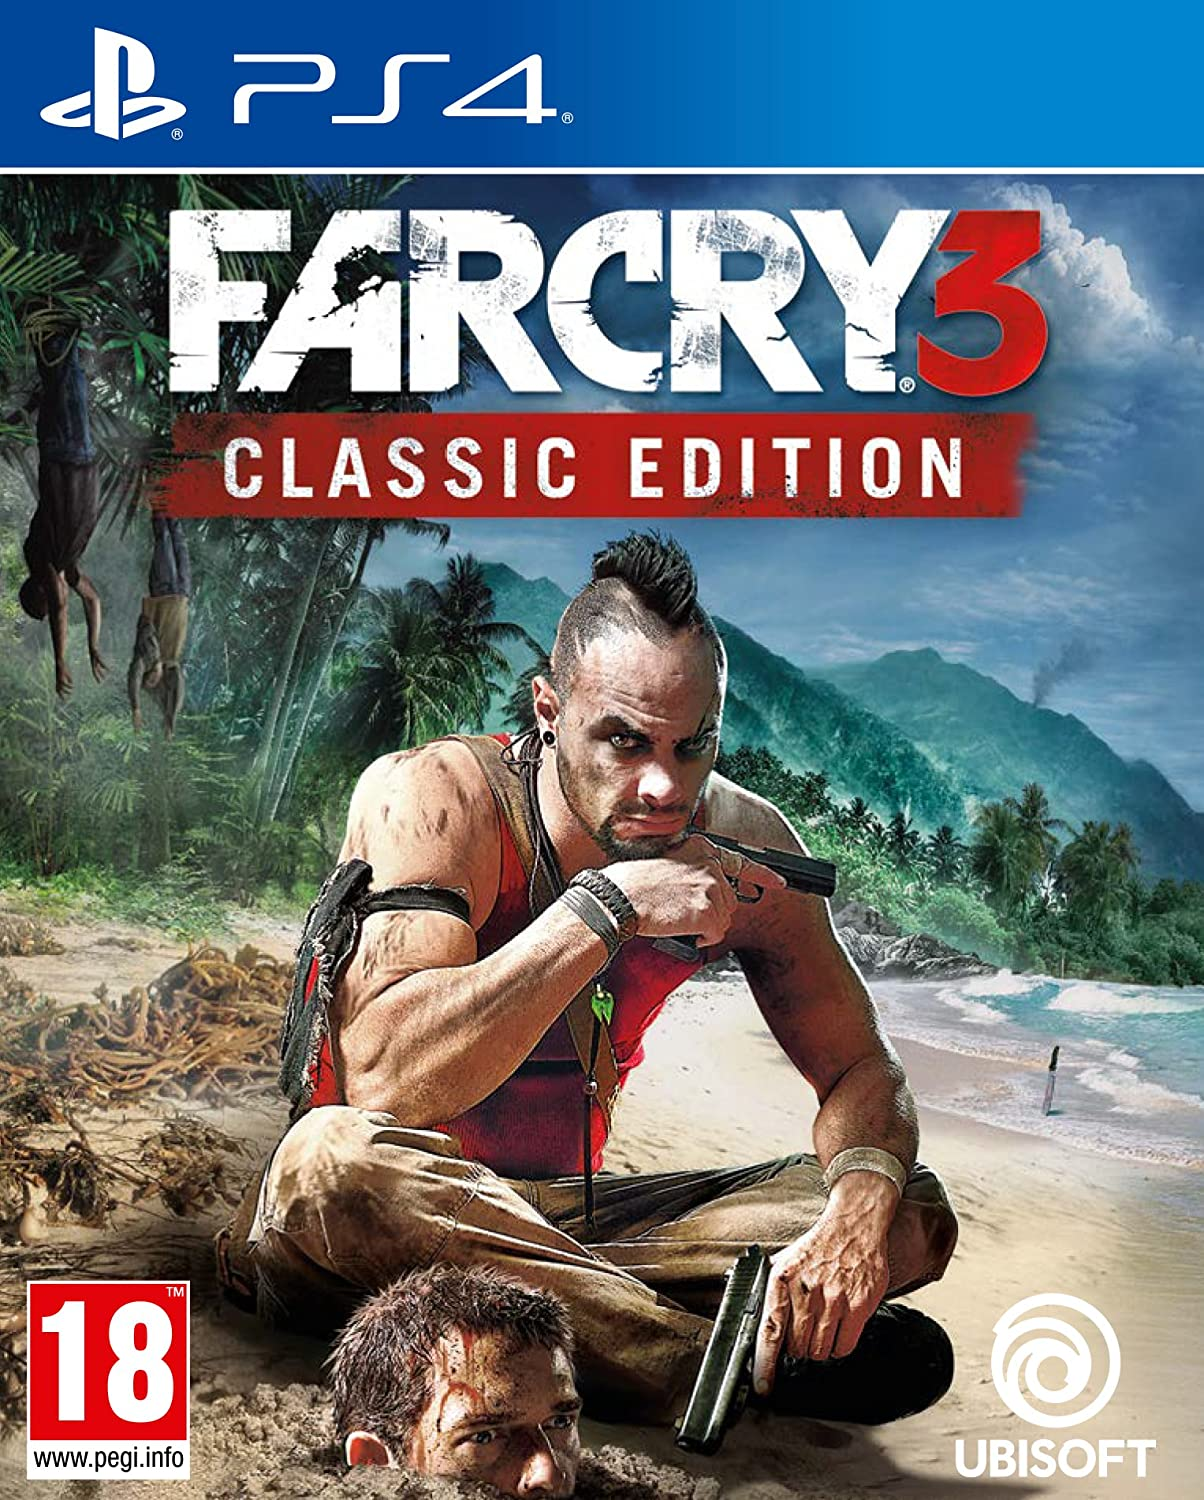 Far Cry 3 Classic Edition Ps4 Amazon Co Uk Pc Video Games